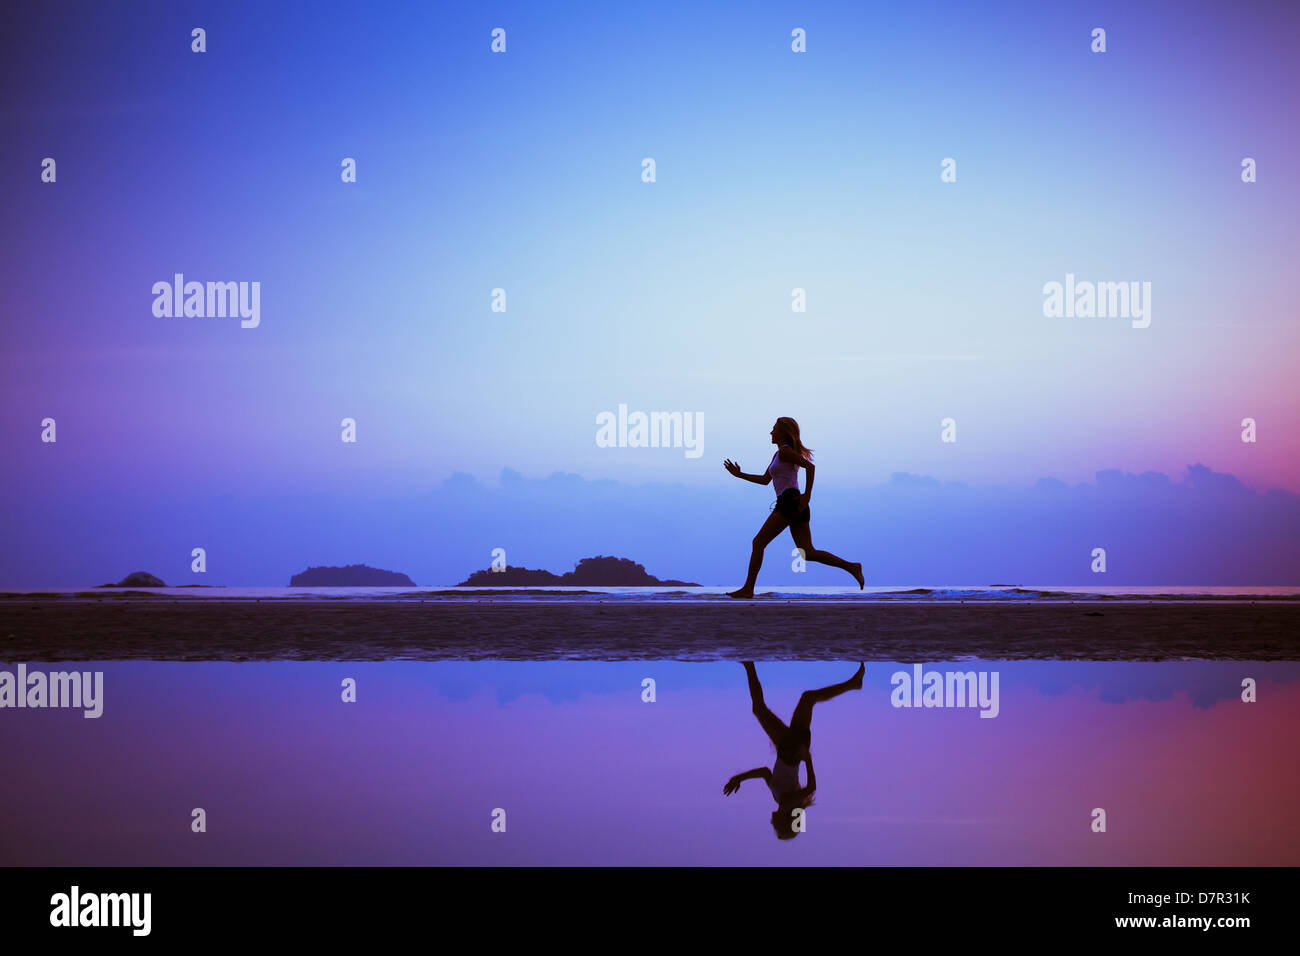 sport background, run to purpose, woman silhouette on the beach - Stock Image